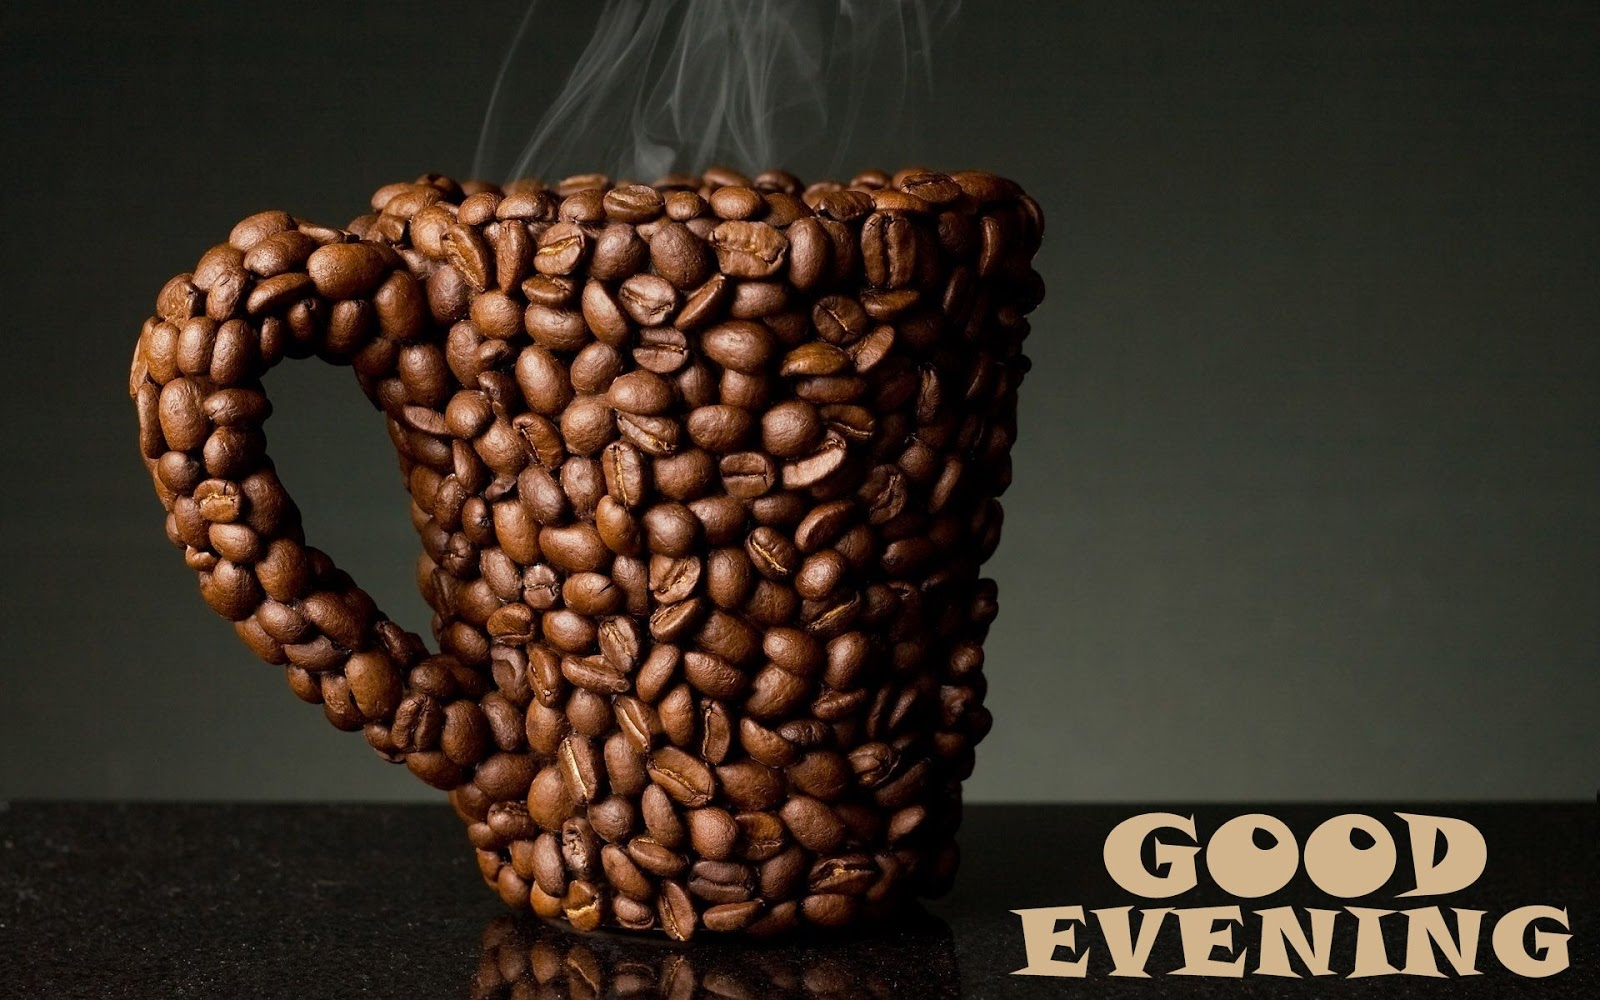 Download HD Good Evening Coffee Images for Whatsapp & Facebook